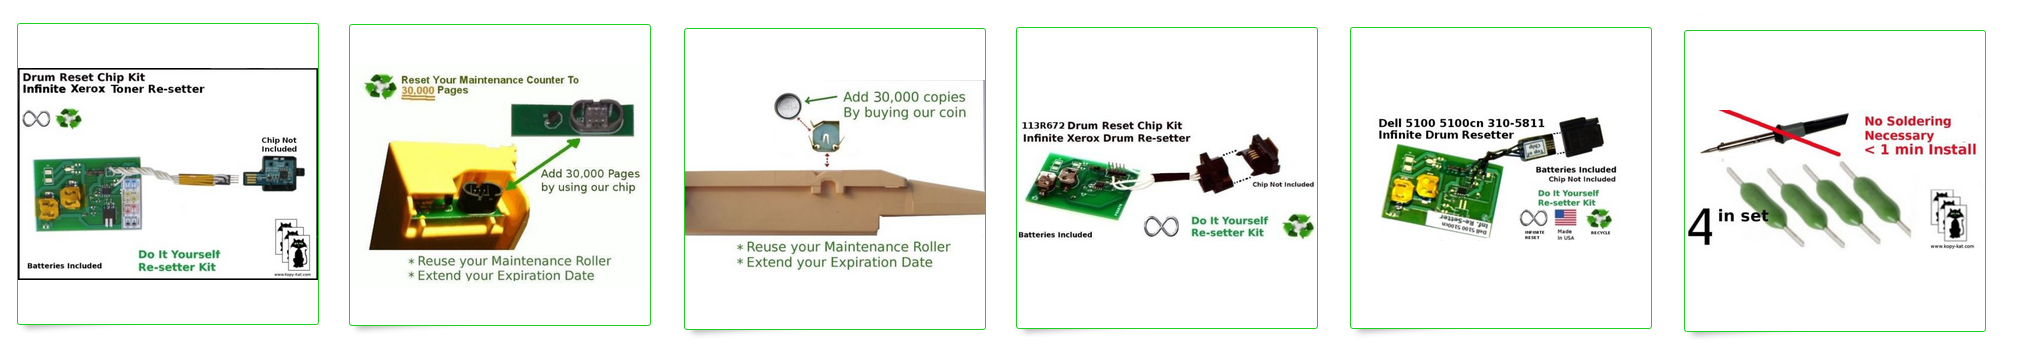 Printer and Copier Reset Kits for Ink, Toner, Fusers, Drums